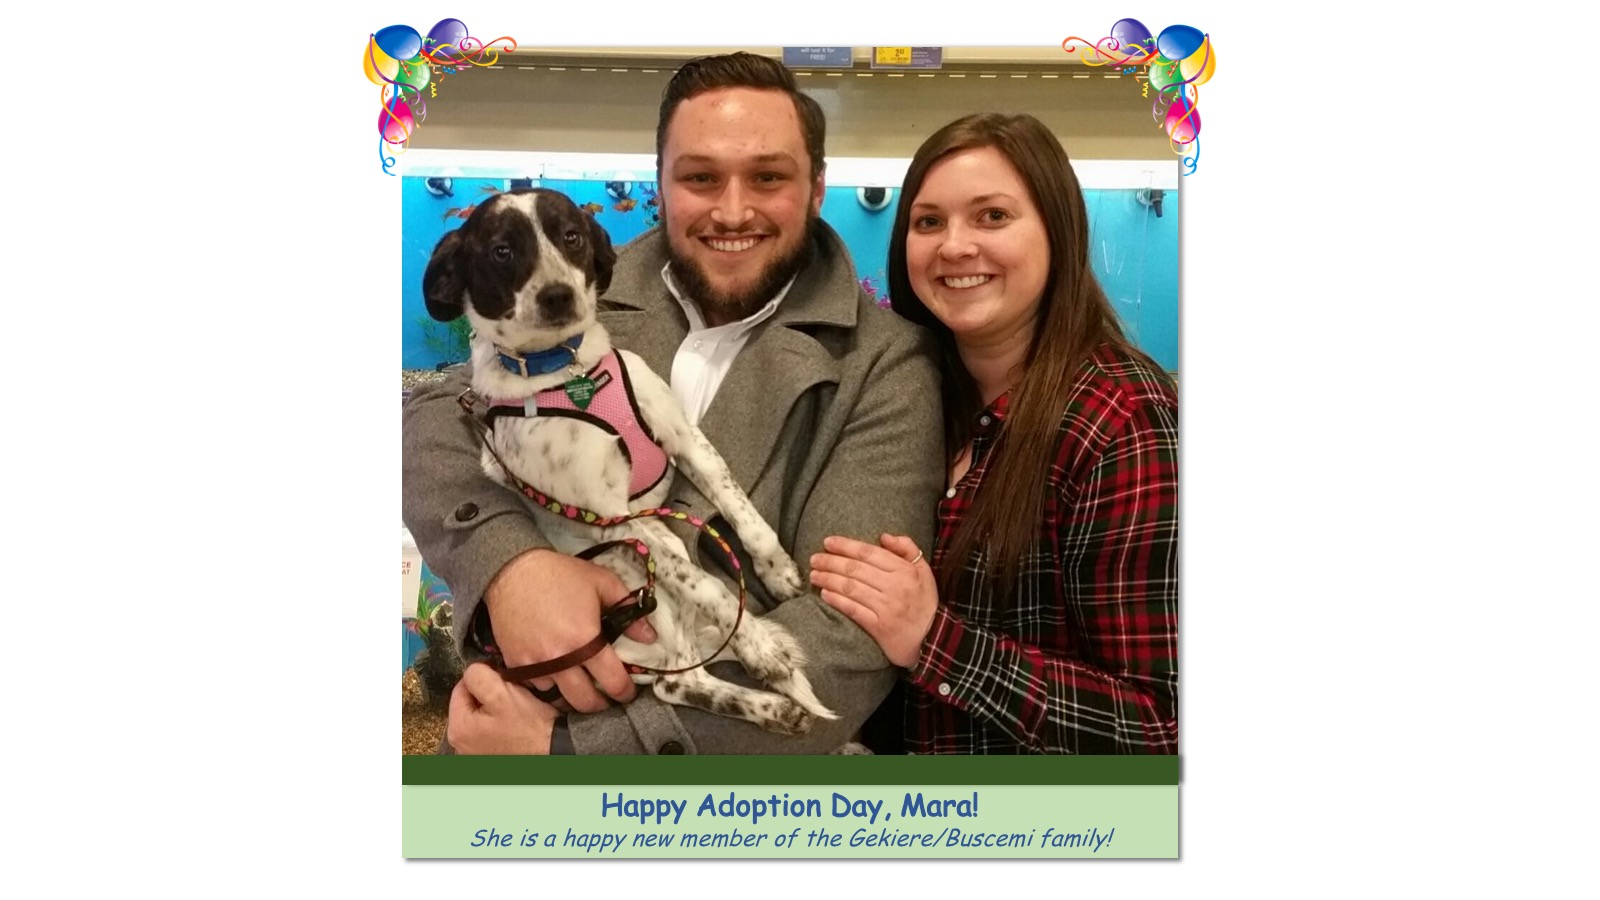 Mara_Adoption_Photo_2018.jpg